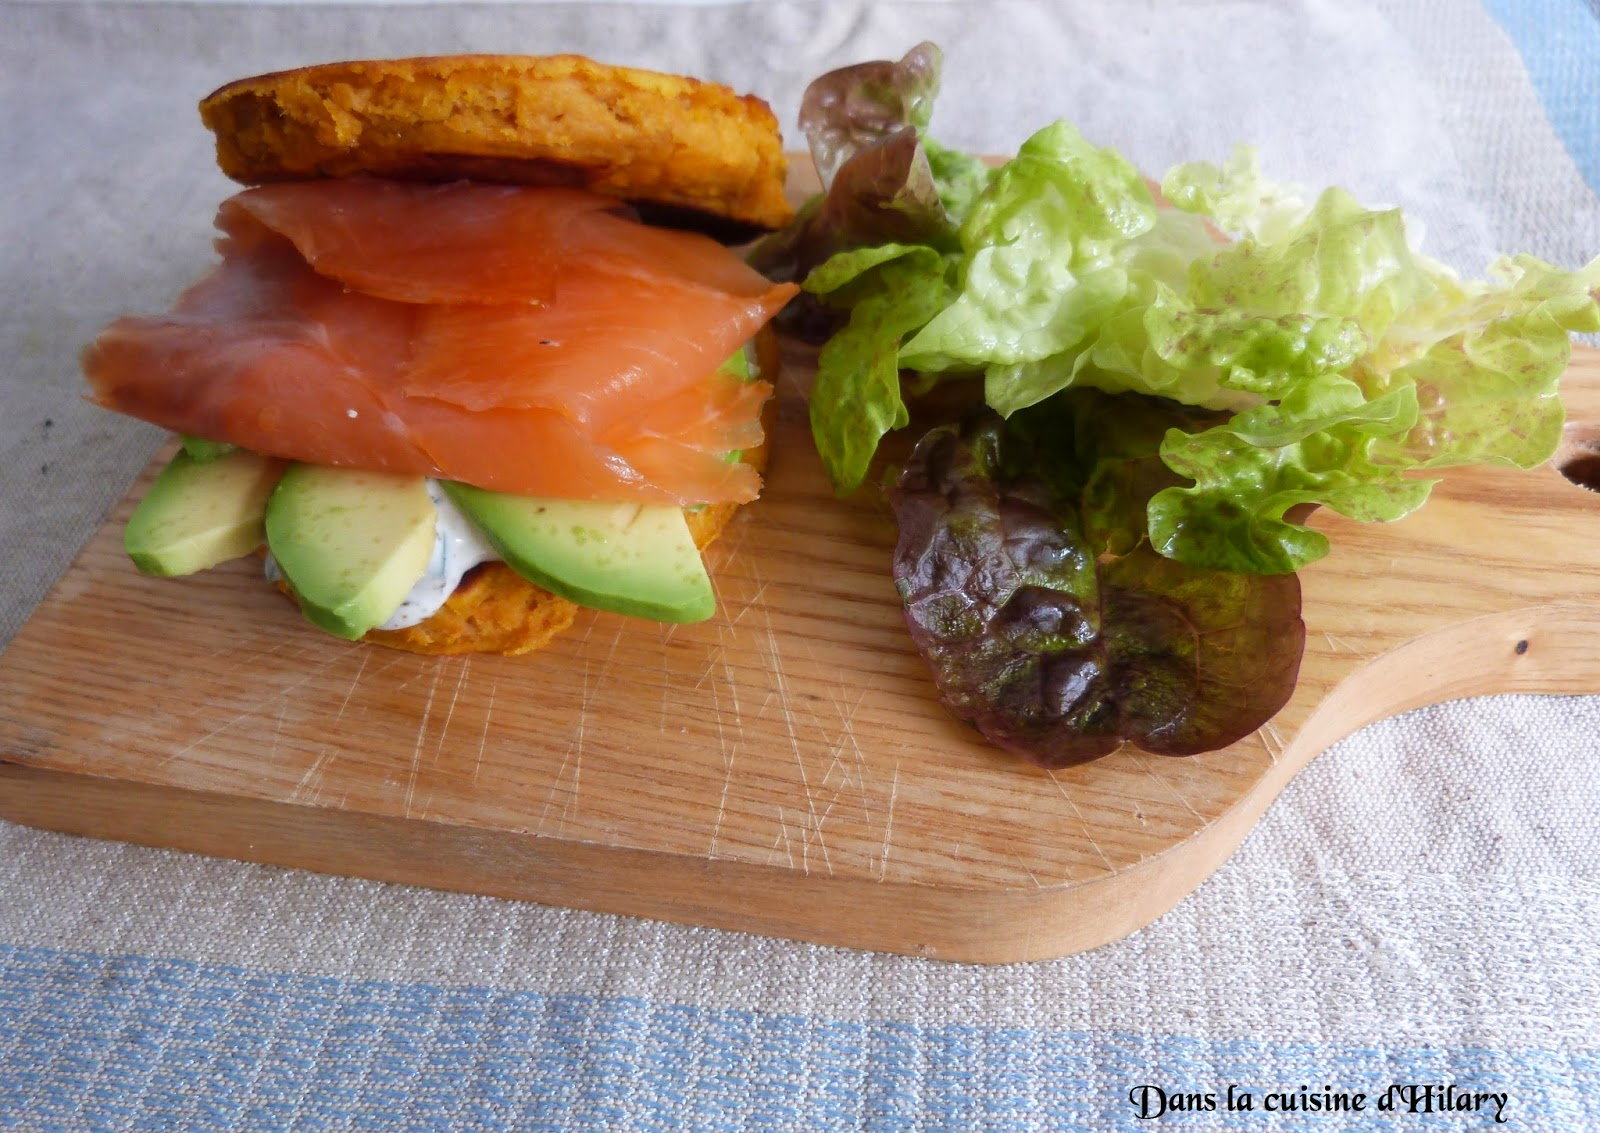 Blini-burger à la patate douce, saumon fumé et avocat